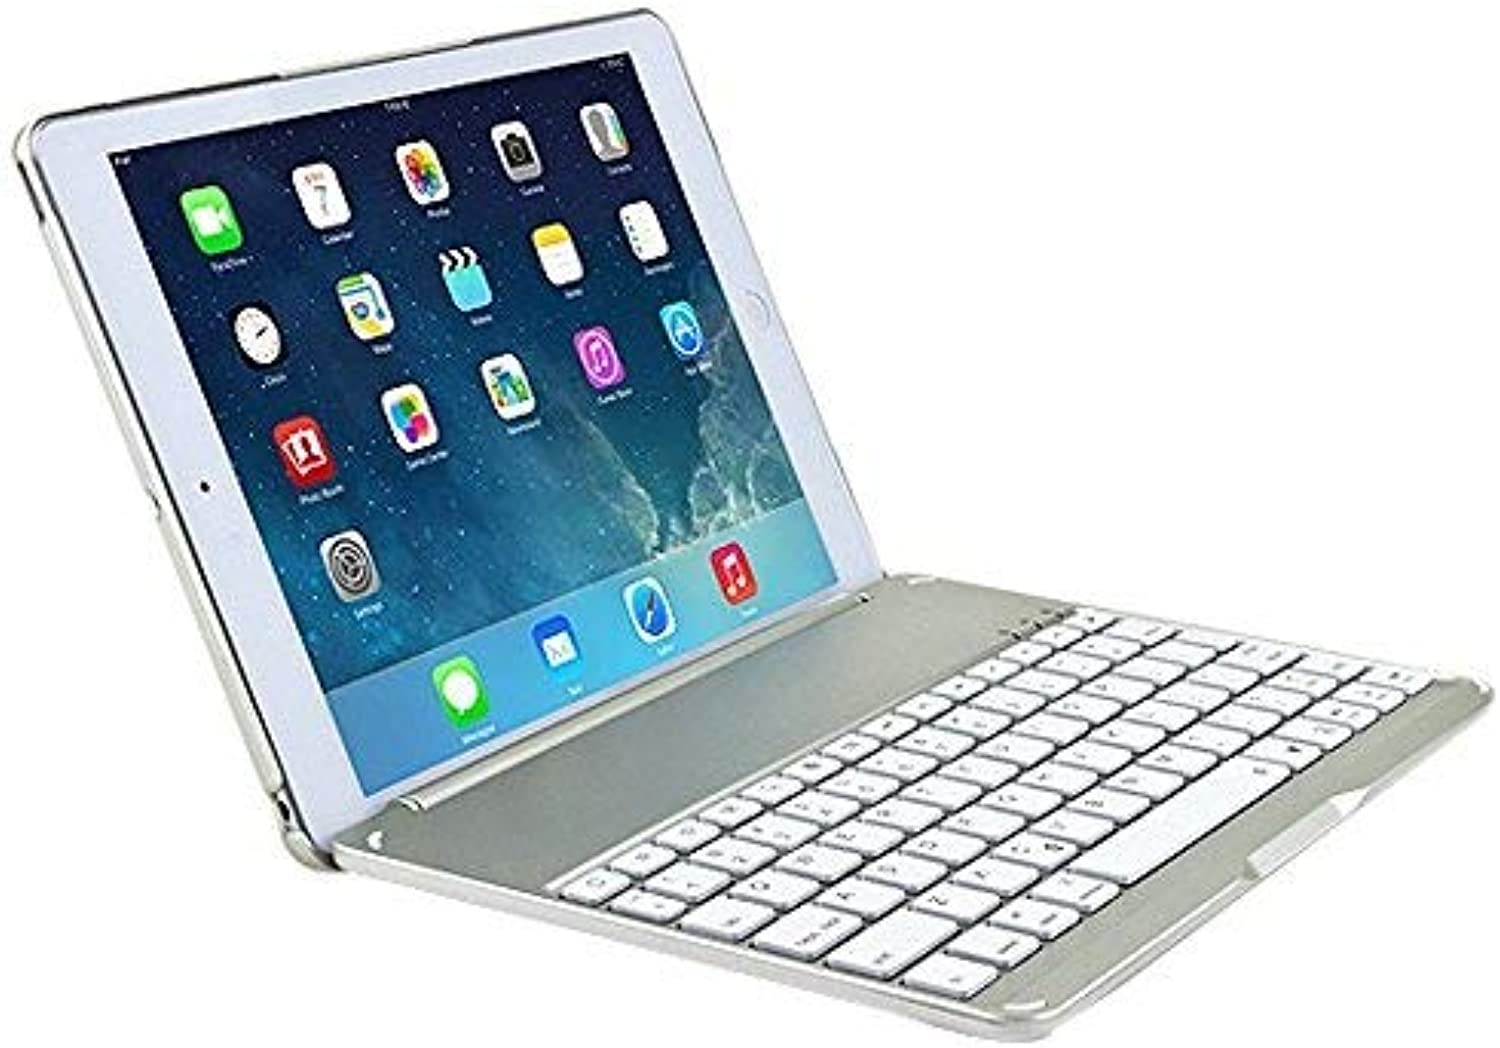 JiiJian iPad Pro 9.7 Keyboard Cover, 7 color LED Backlit Wireless blueetooth Keyboard Auto Sleep Wake Function Predective Smart Folio Case Cover for 9.7 inch iPad Pro 9.7 -Silver